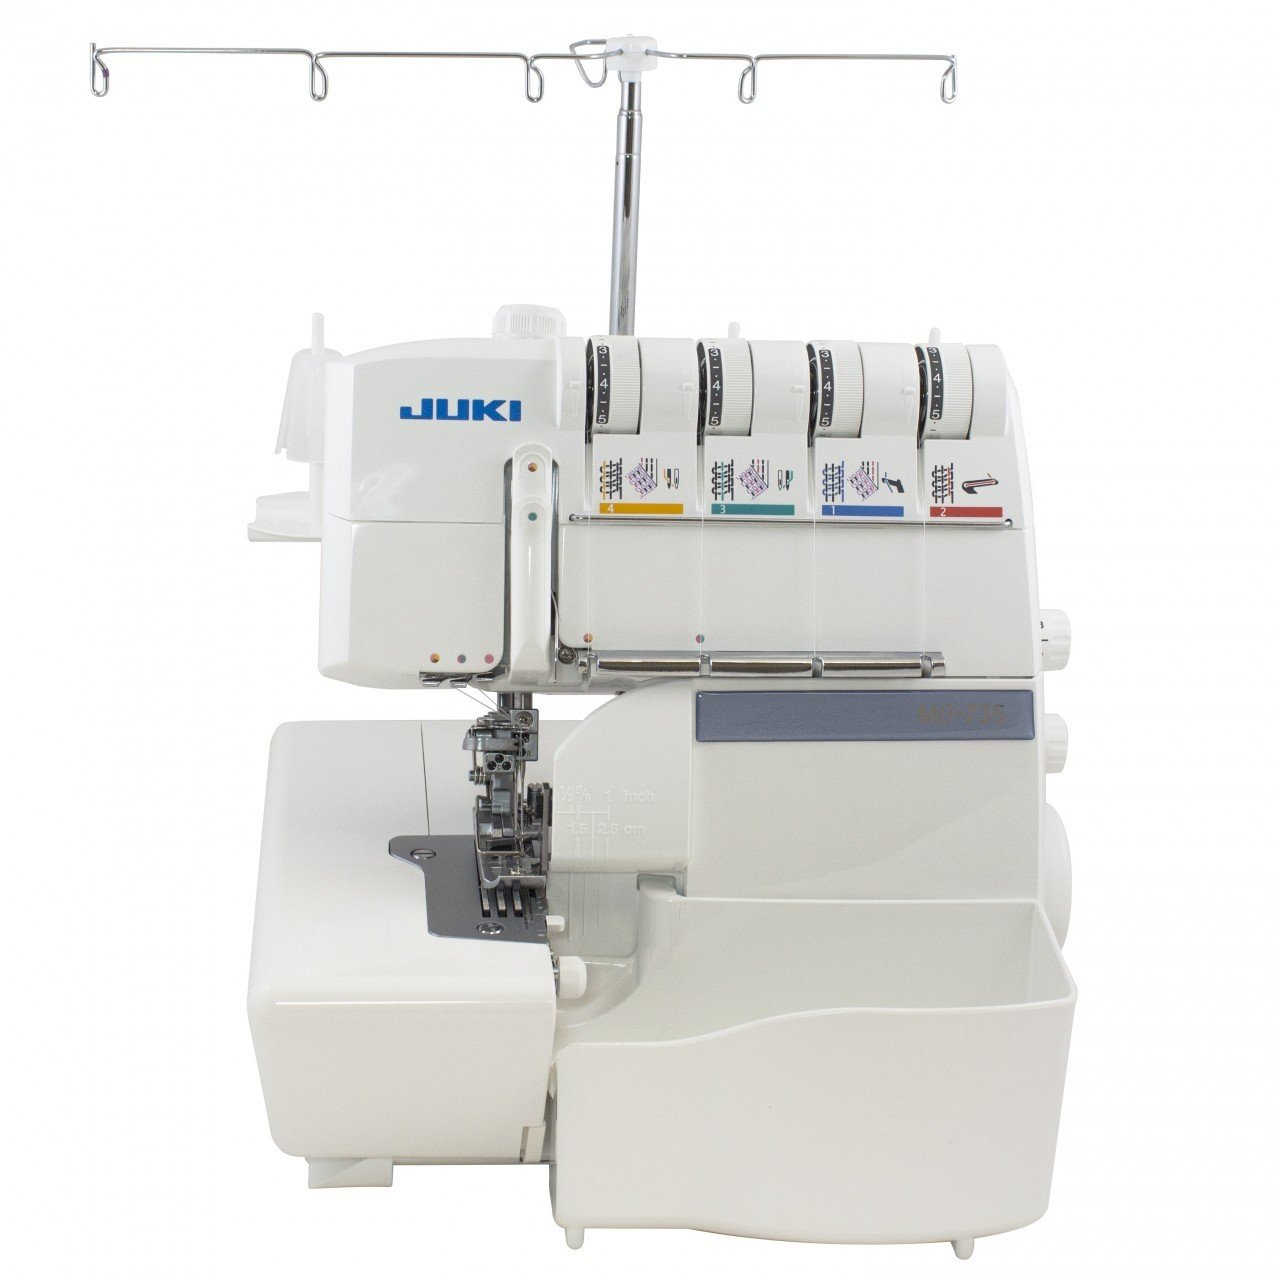 Juki MO-735 5-Thread Serger